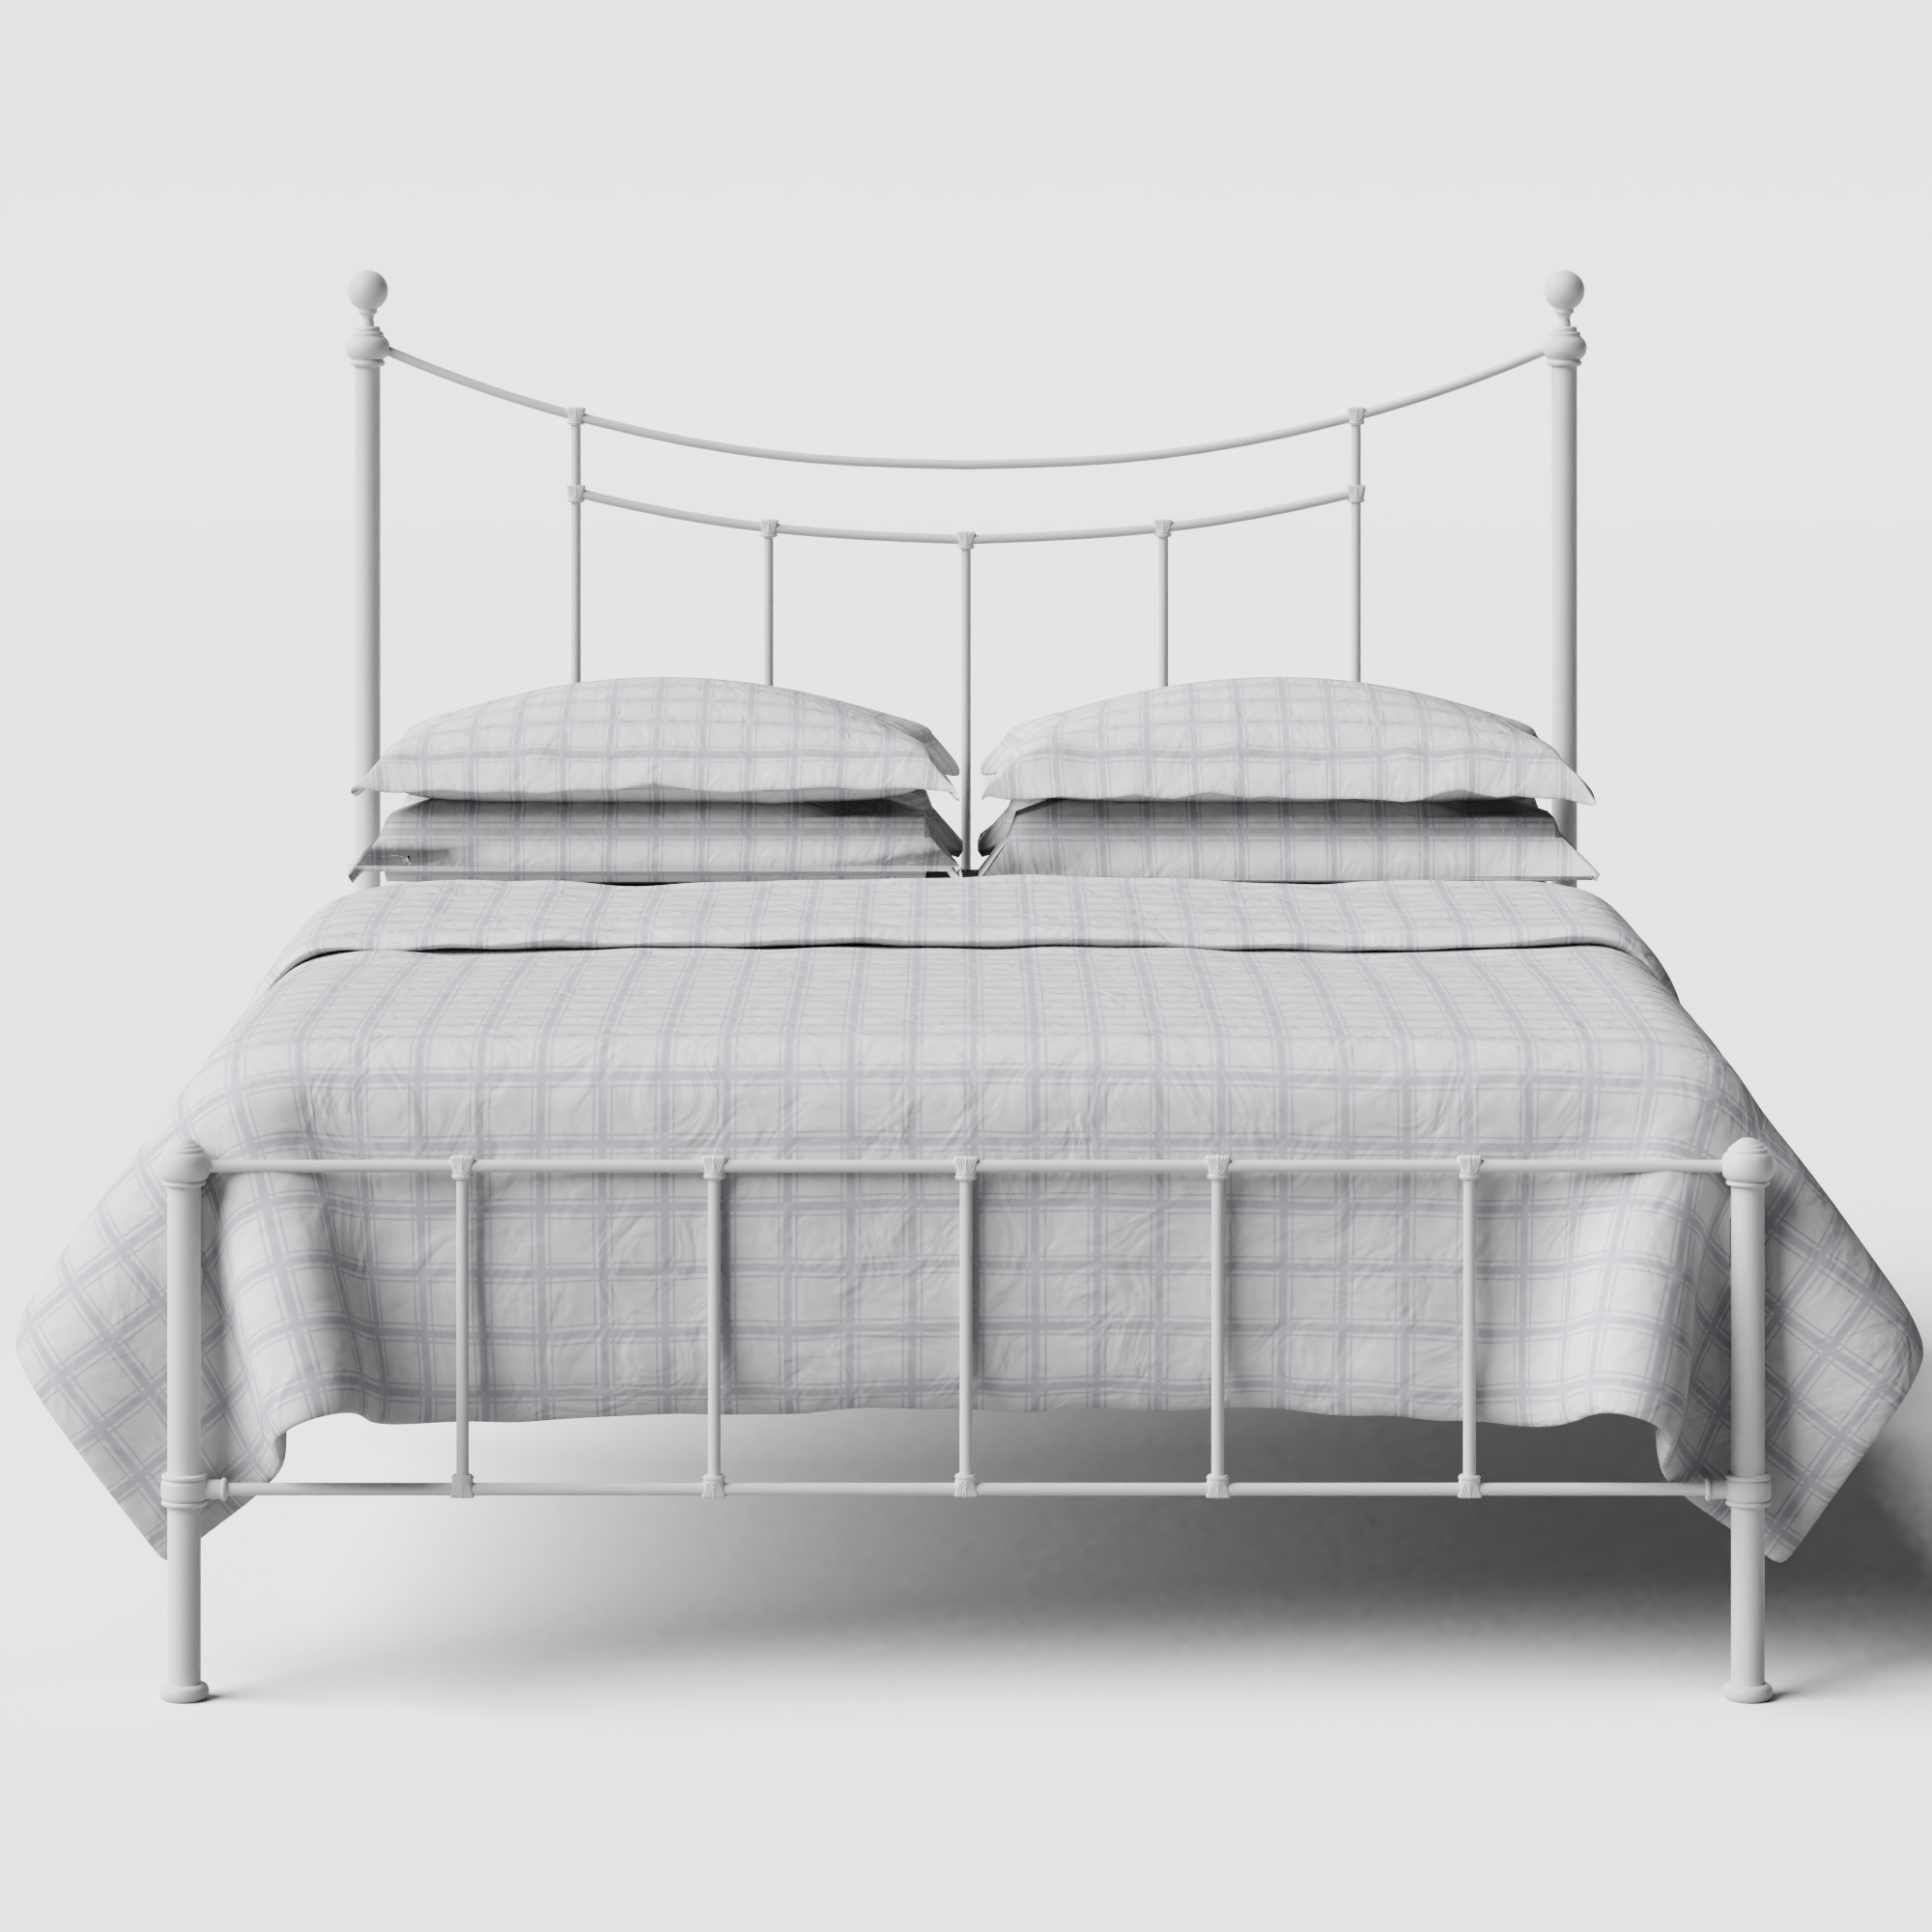 Isabelle iron/metal bed in white